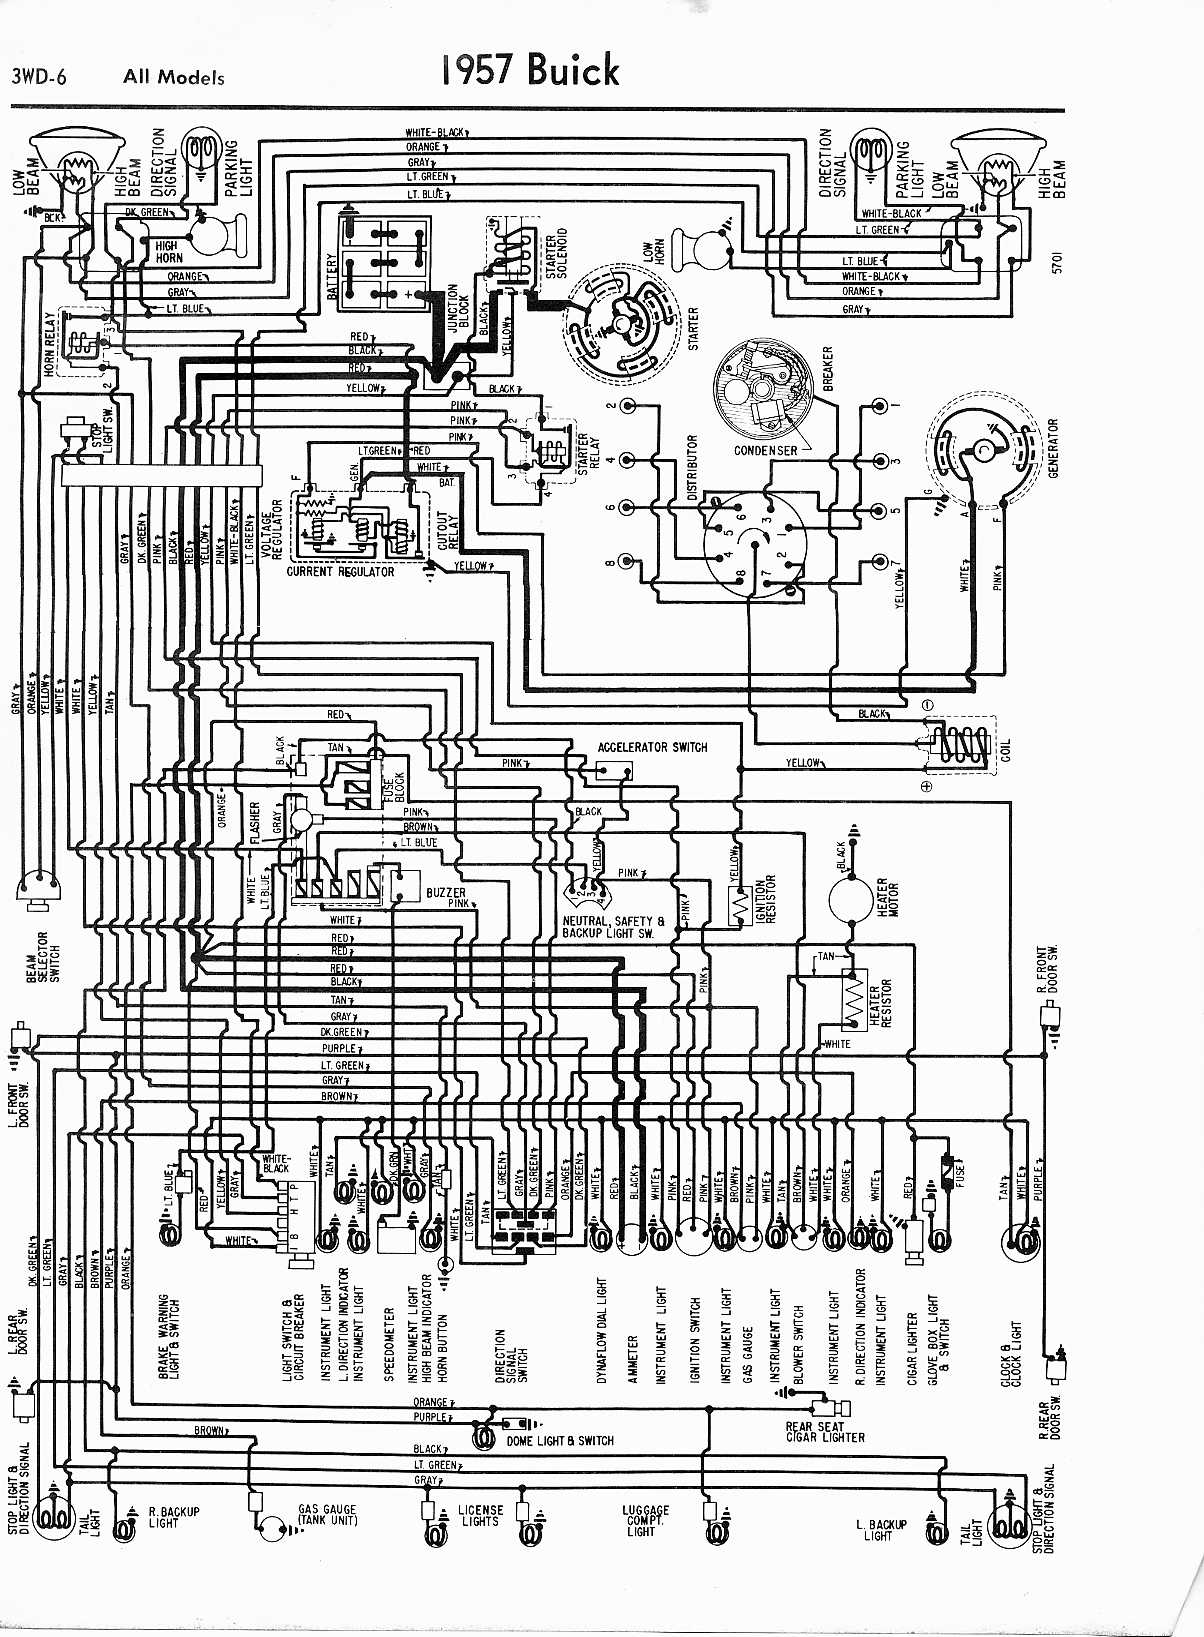 MWireBuic65_3WD 006 buick wiring diagrams 1957 1965 1957 vw beetle wiring diagram at bayanpartner.co